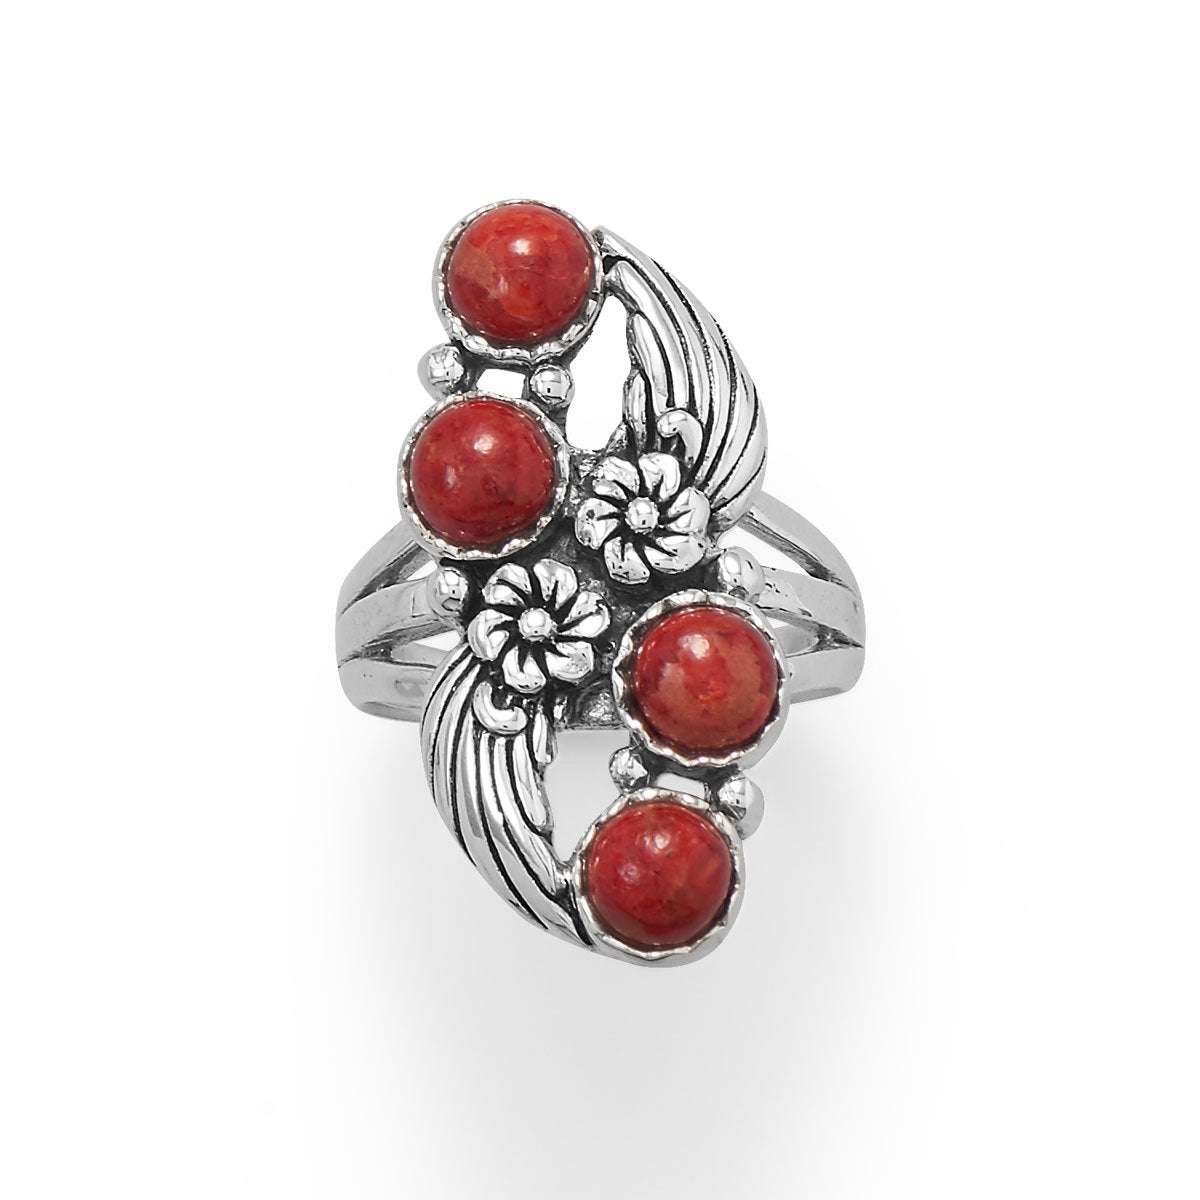 925 Sterling Silver Floral Design Dyed Red Coral Ring